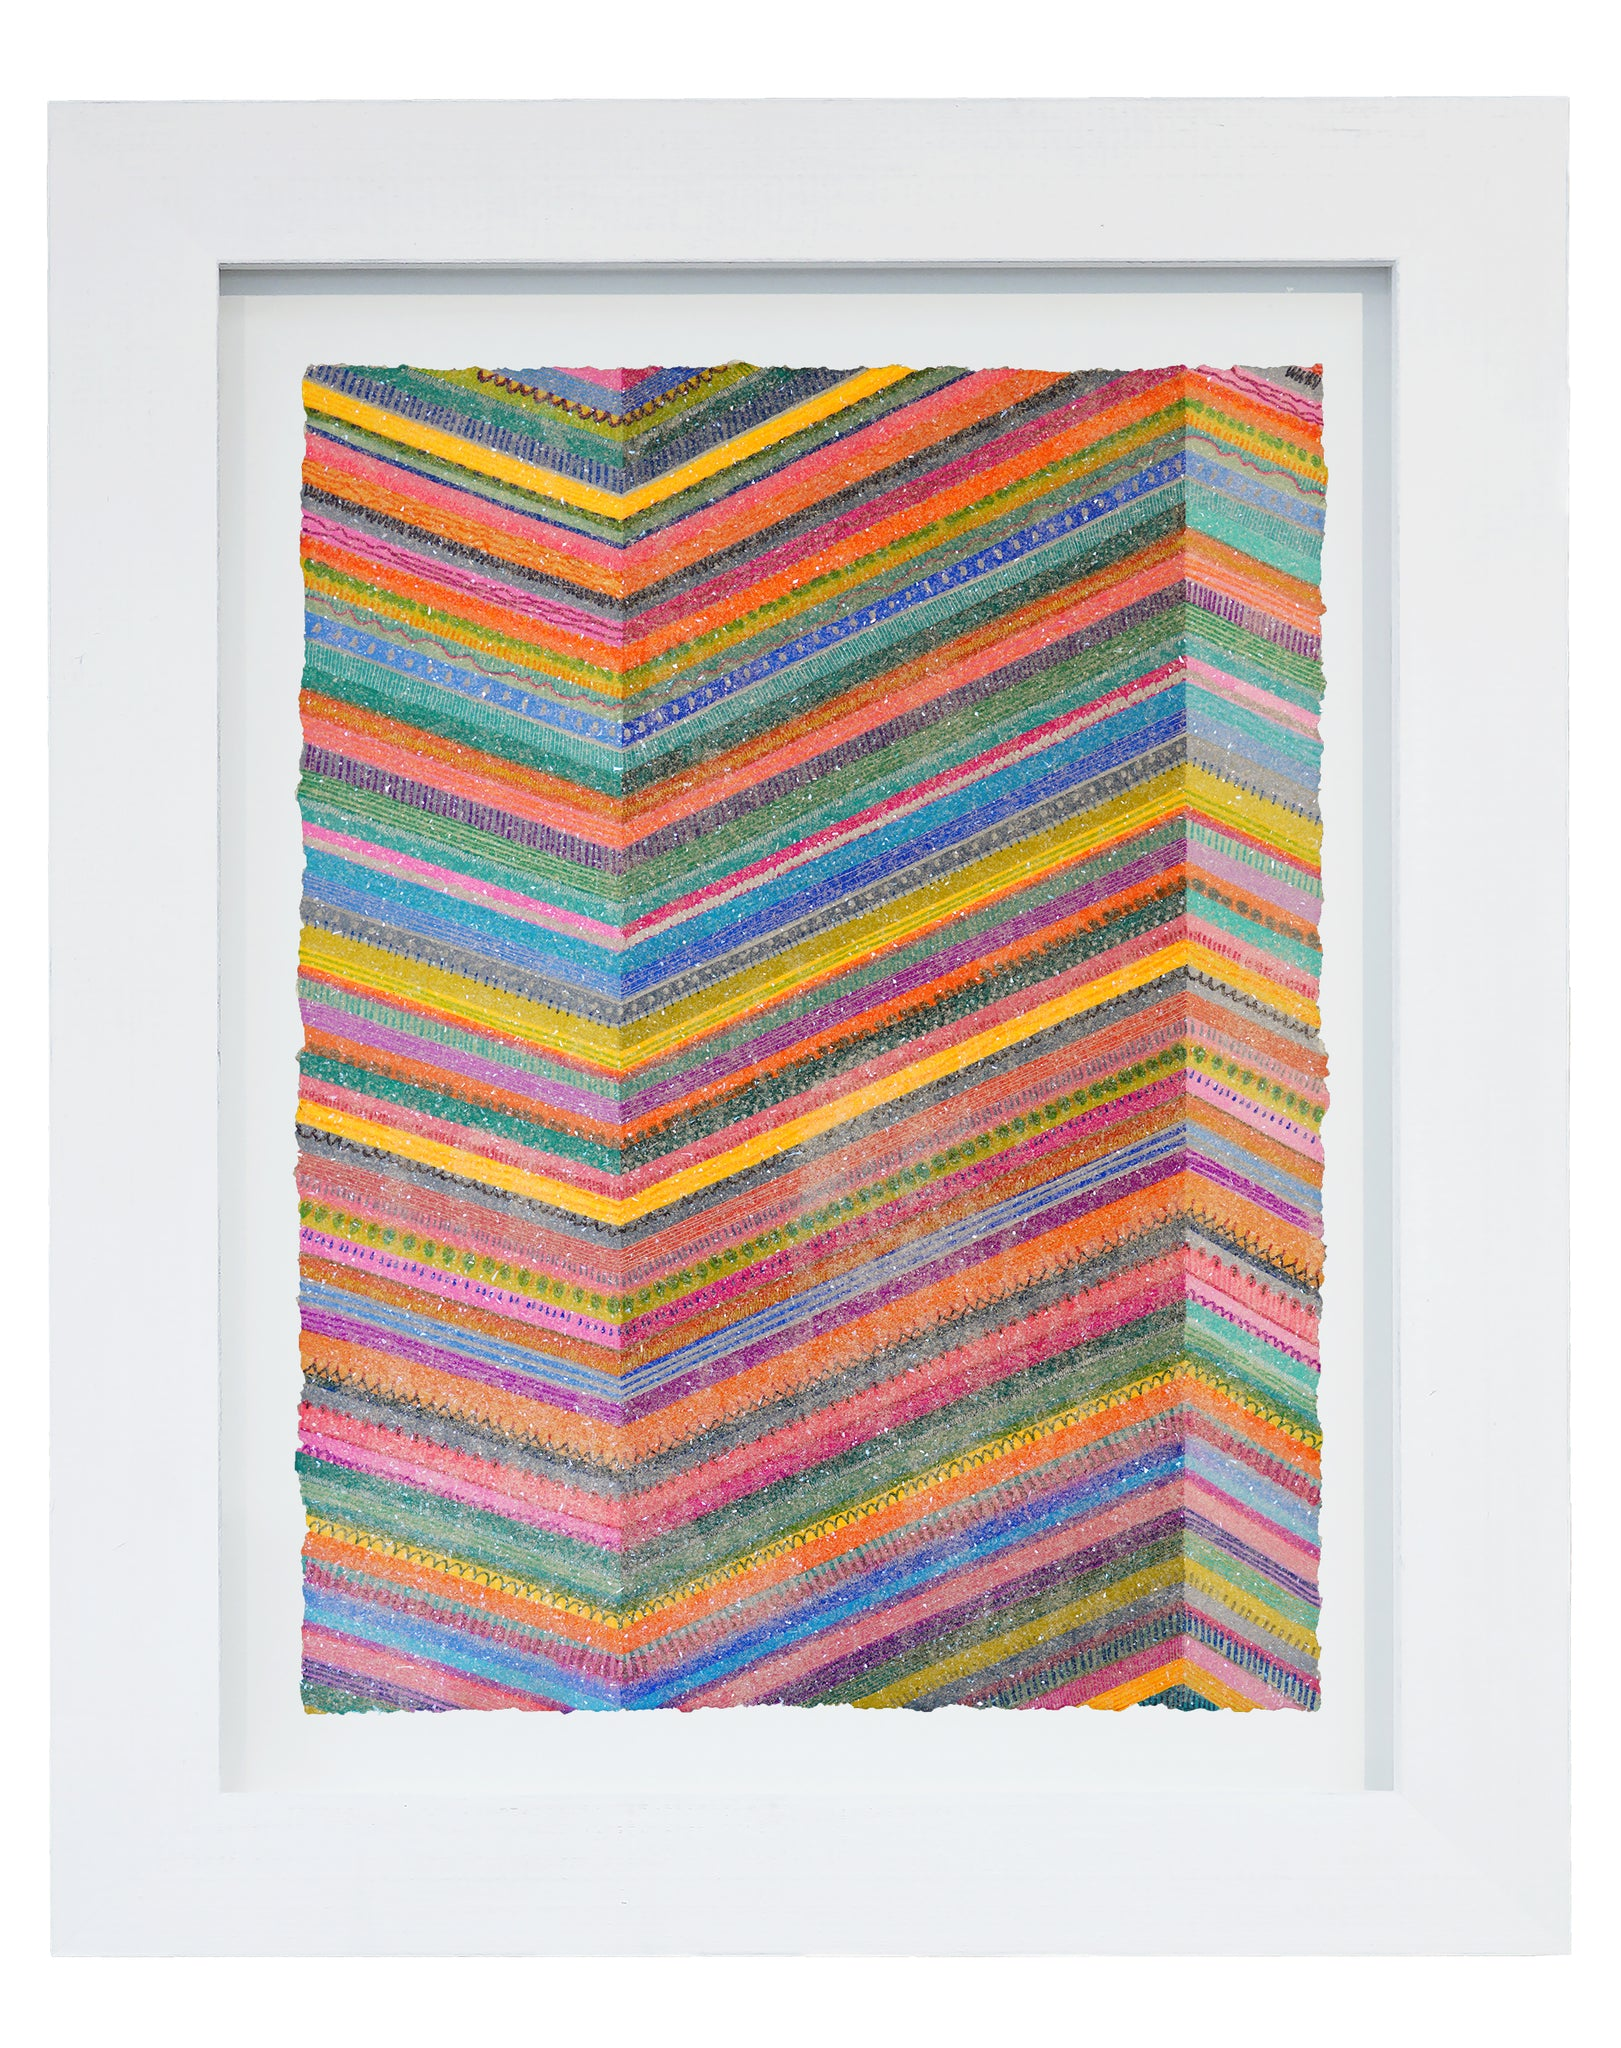 "Lineation No. 19 -36"" X 28"" Framed"